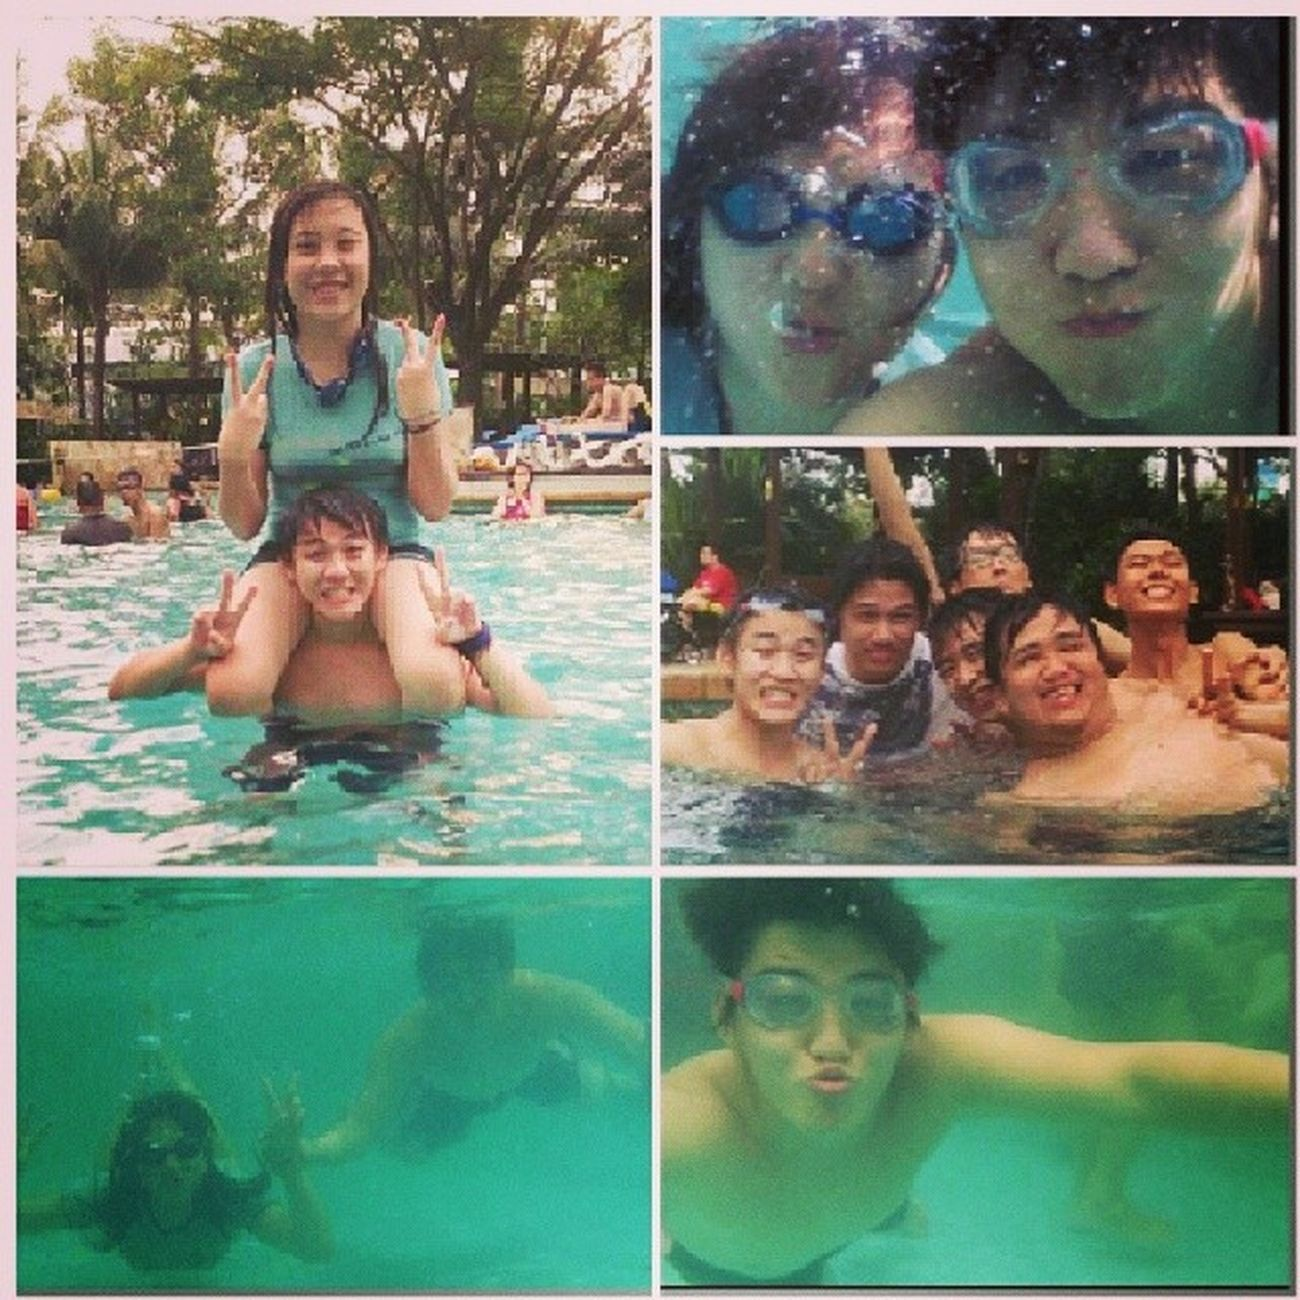 Havin funn with some new friends Yolo Waterboom Jakarta Fun swimming swimmingpool selfie ootd